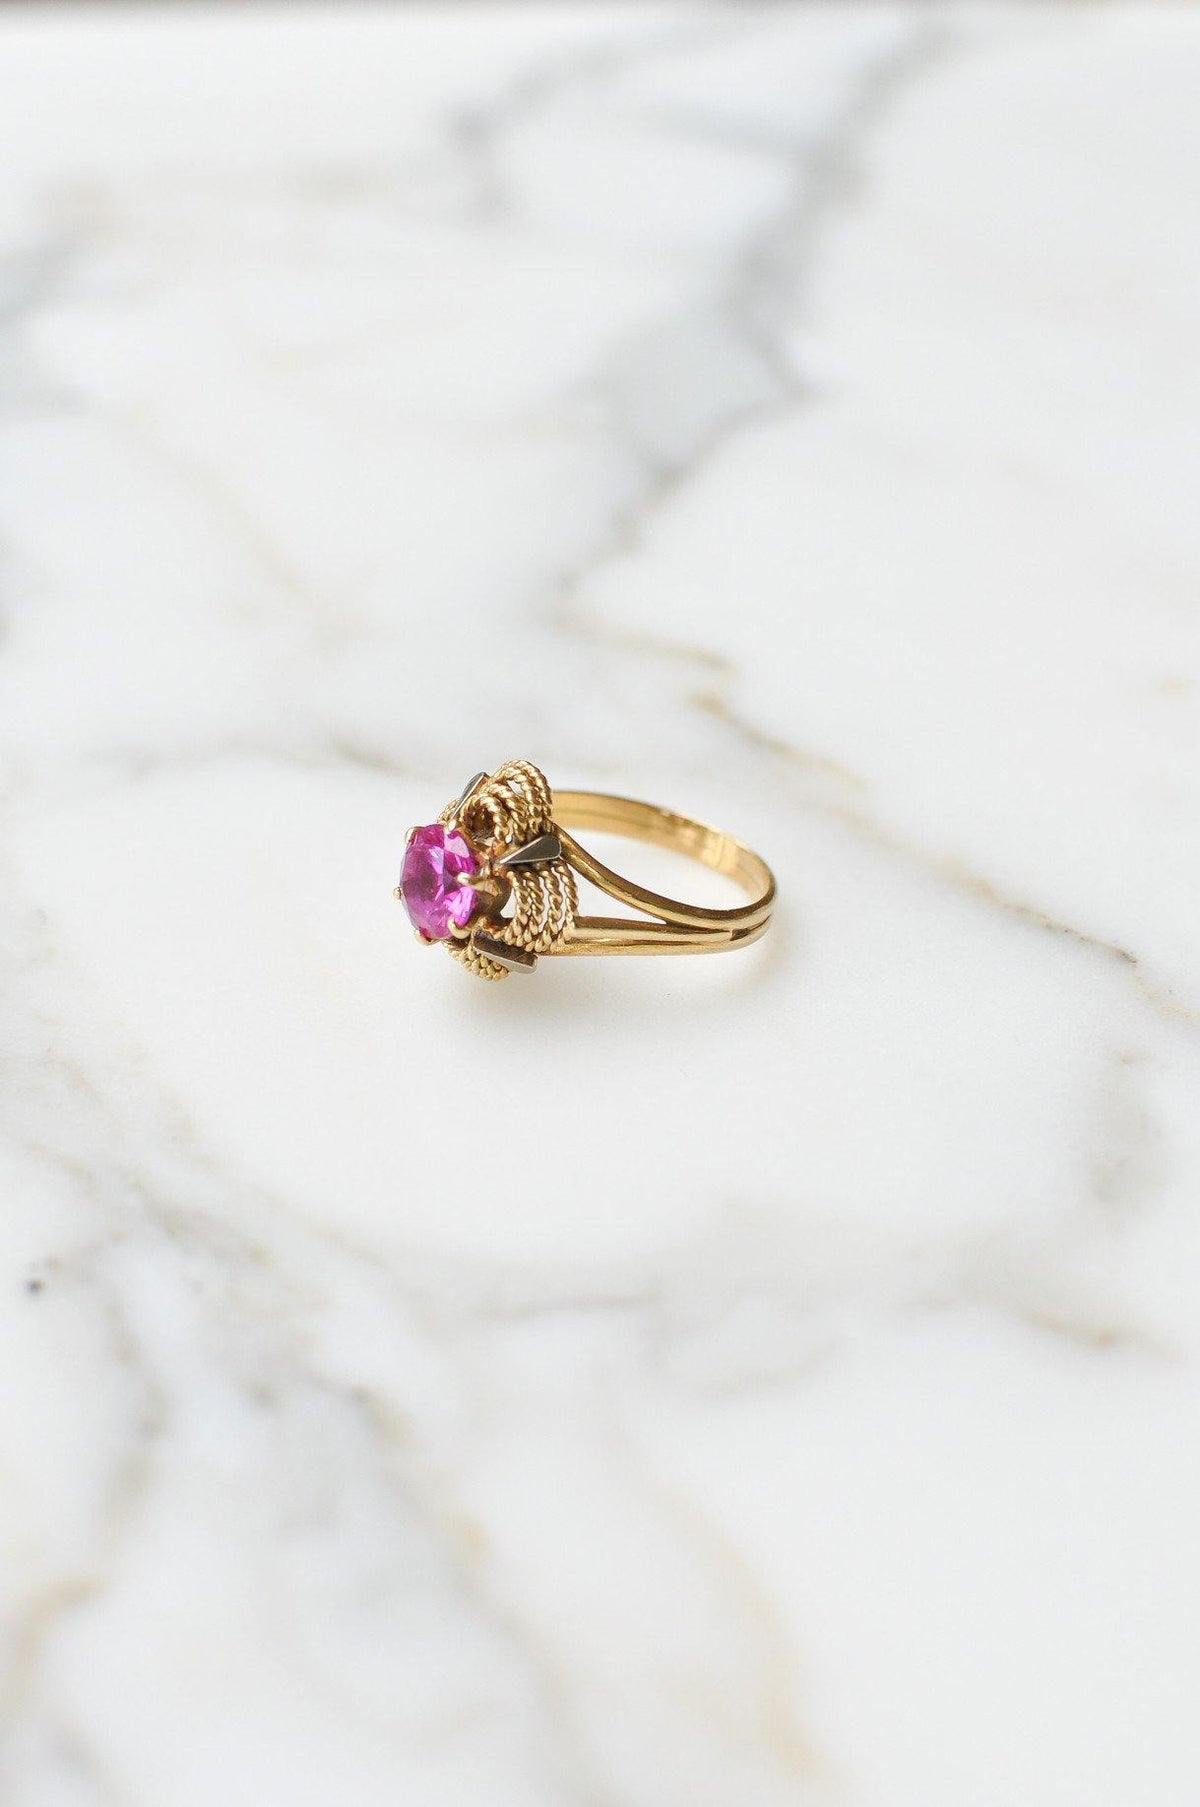 __Gold West Vintage__Fuchsia Cocktail Ring